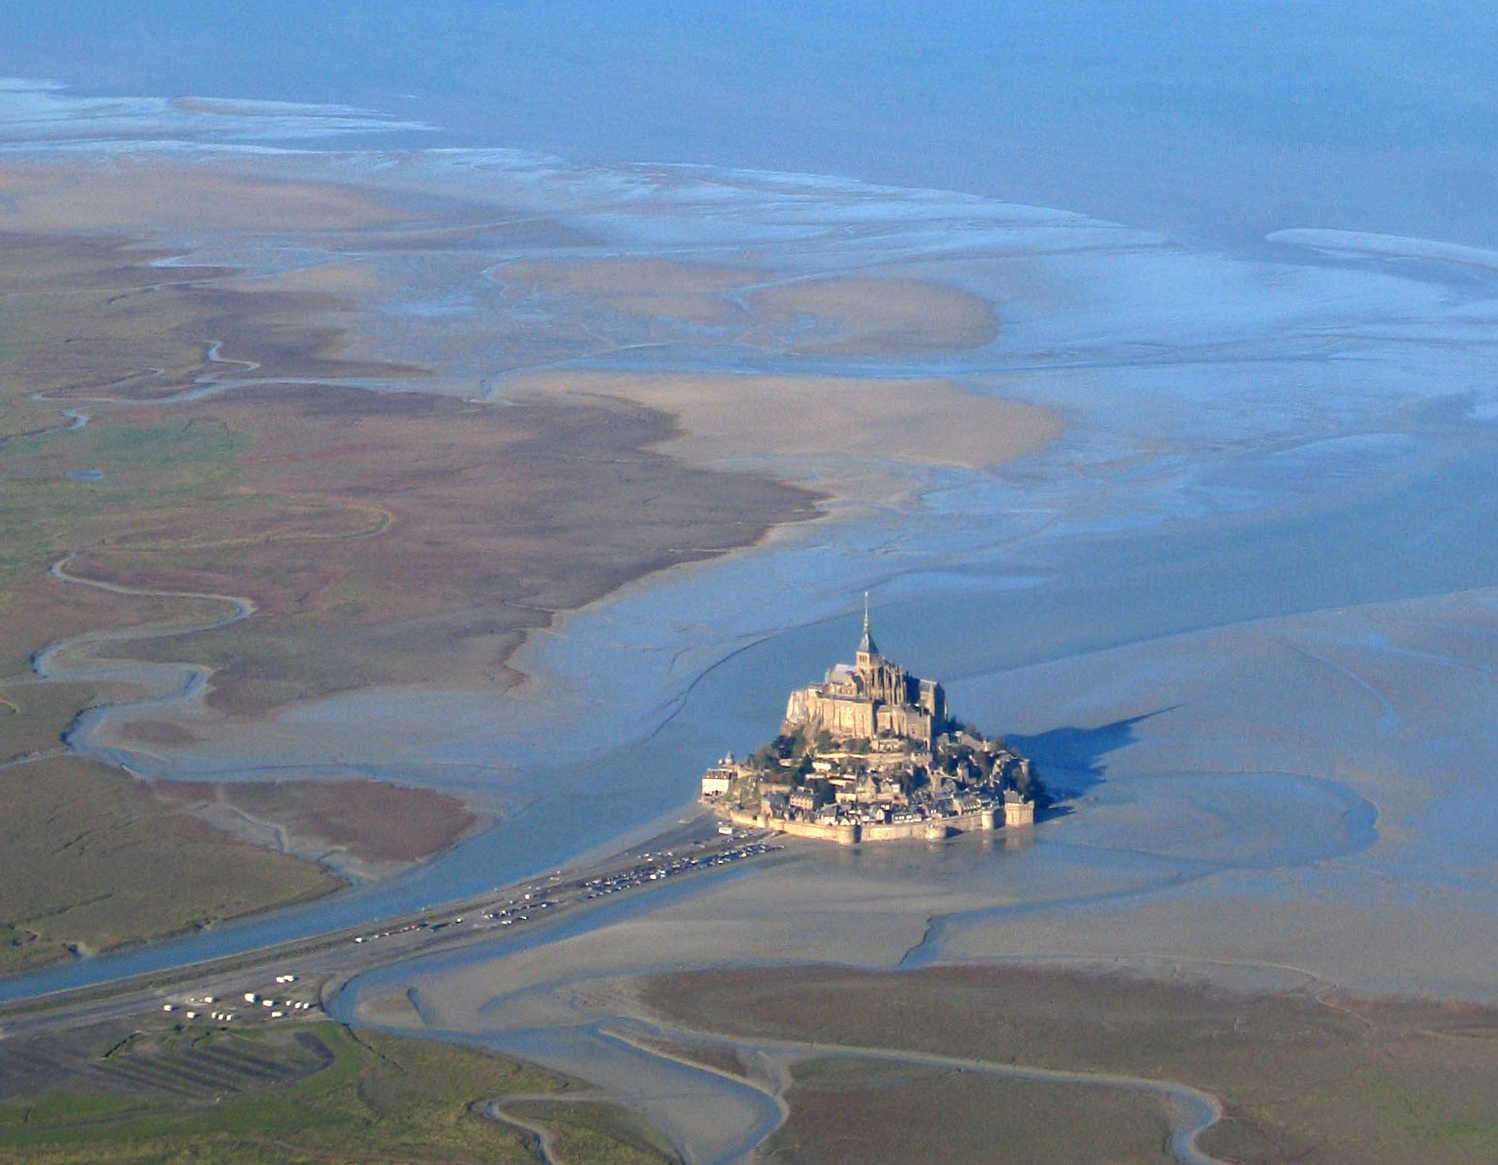 Mont saint michel from space boing boing for Au jardin st michel pontorson france